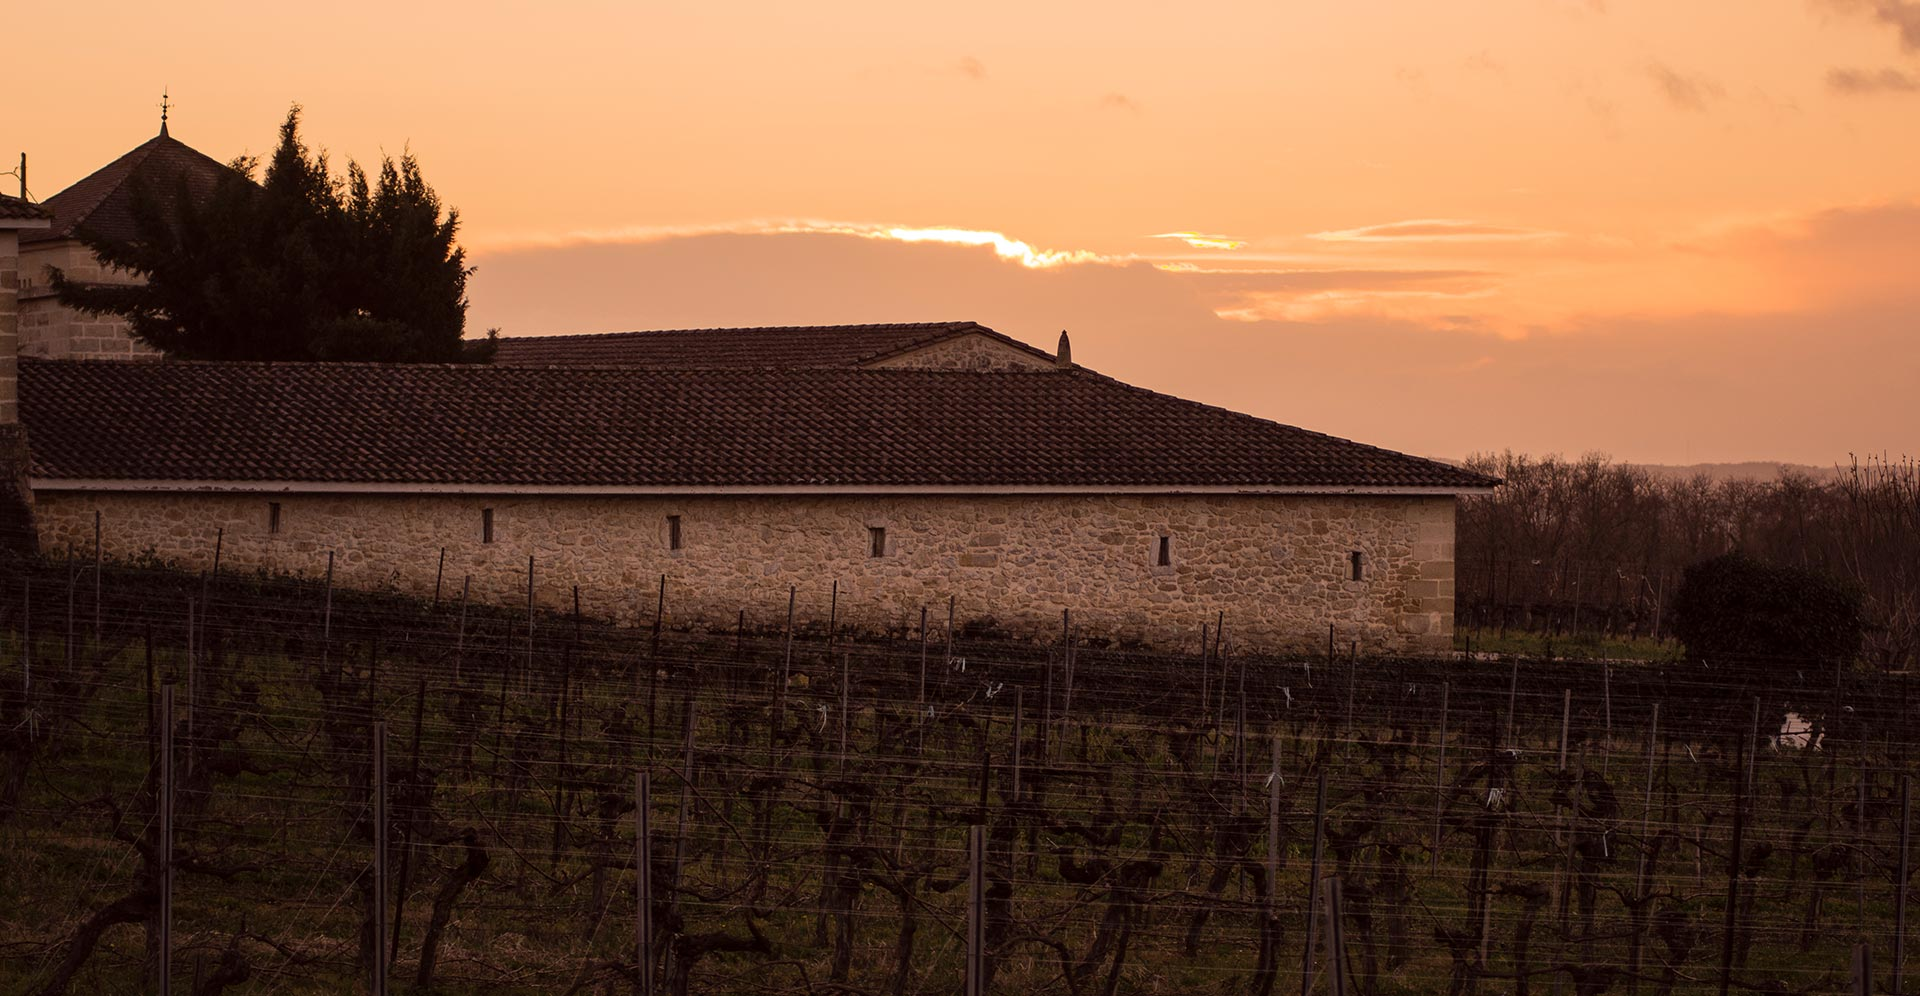 Sunset in Castillon